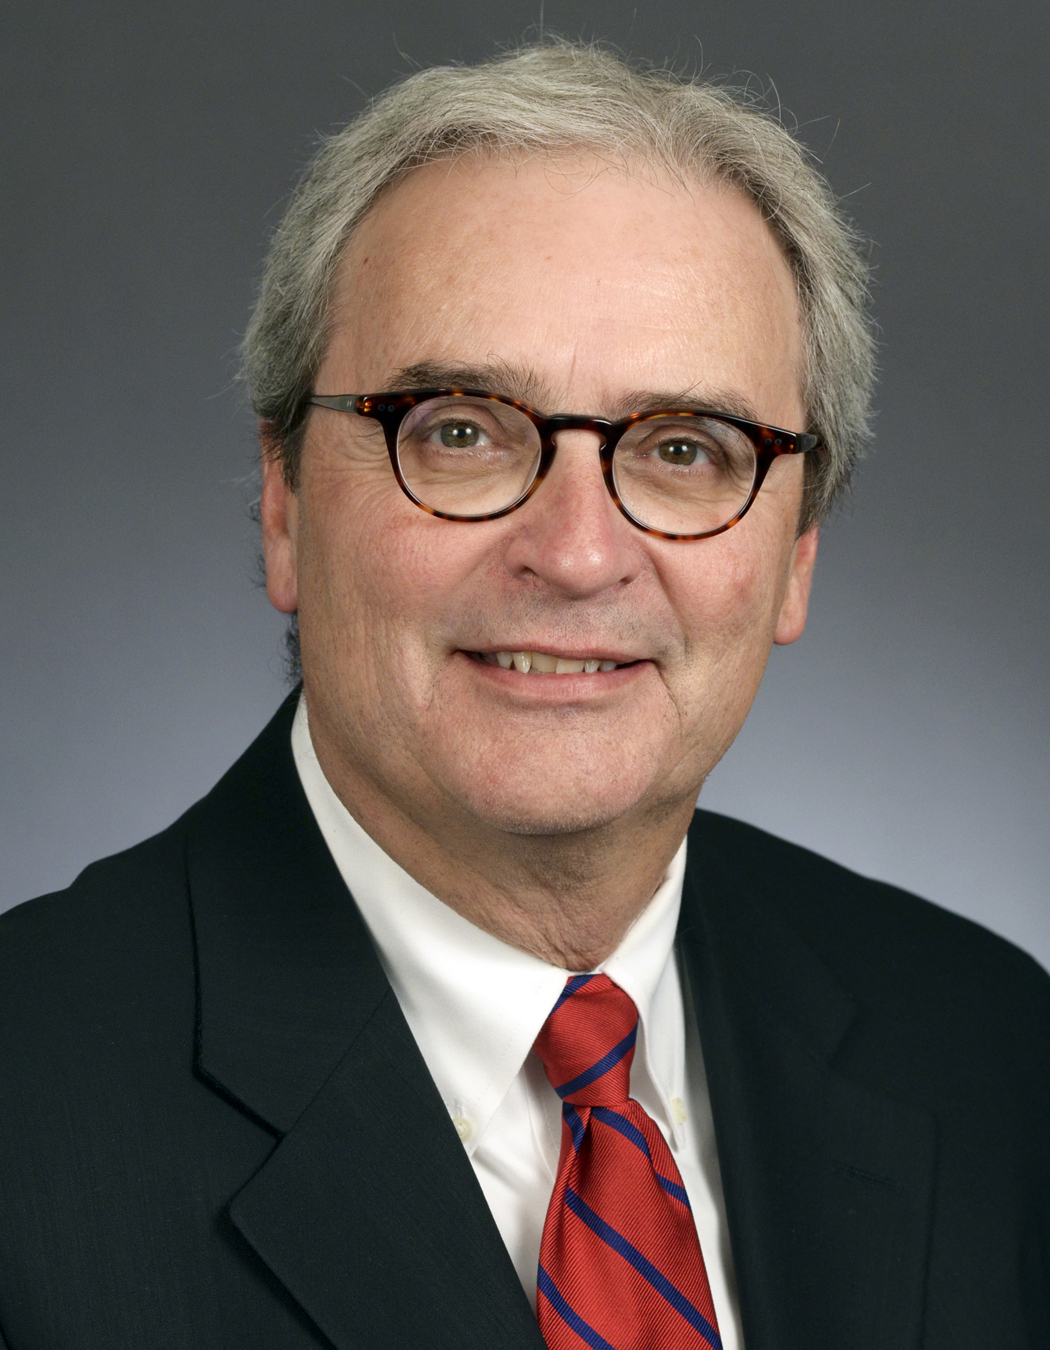 Representative Clark Johnson